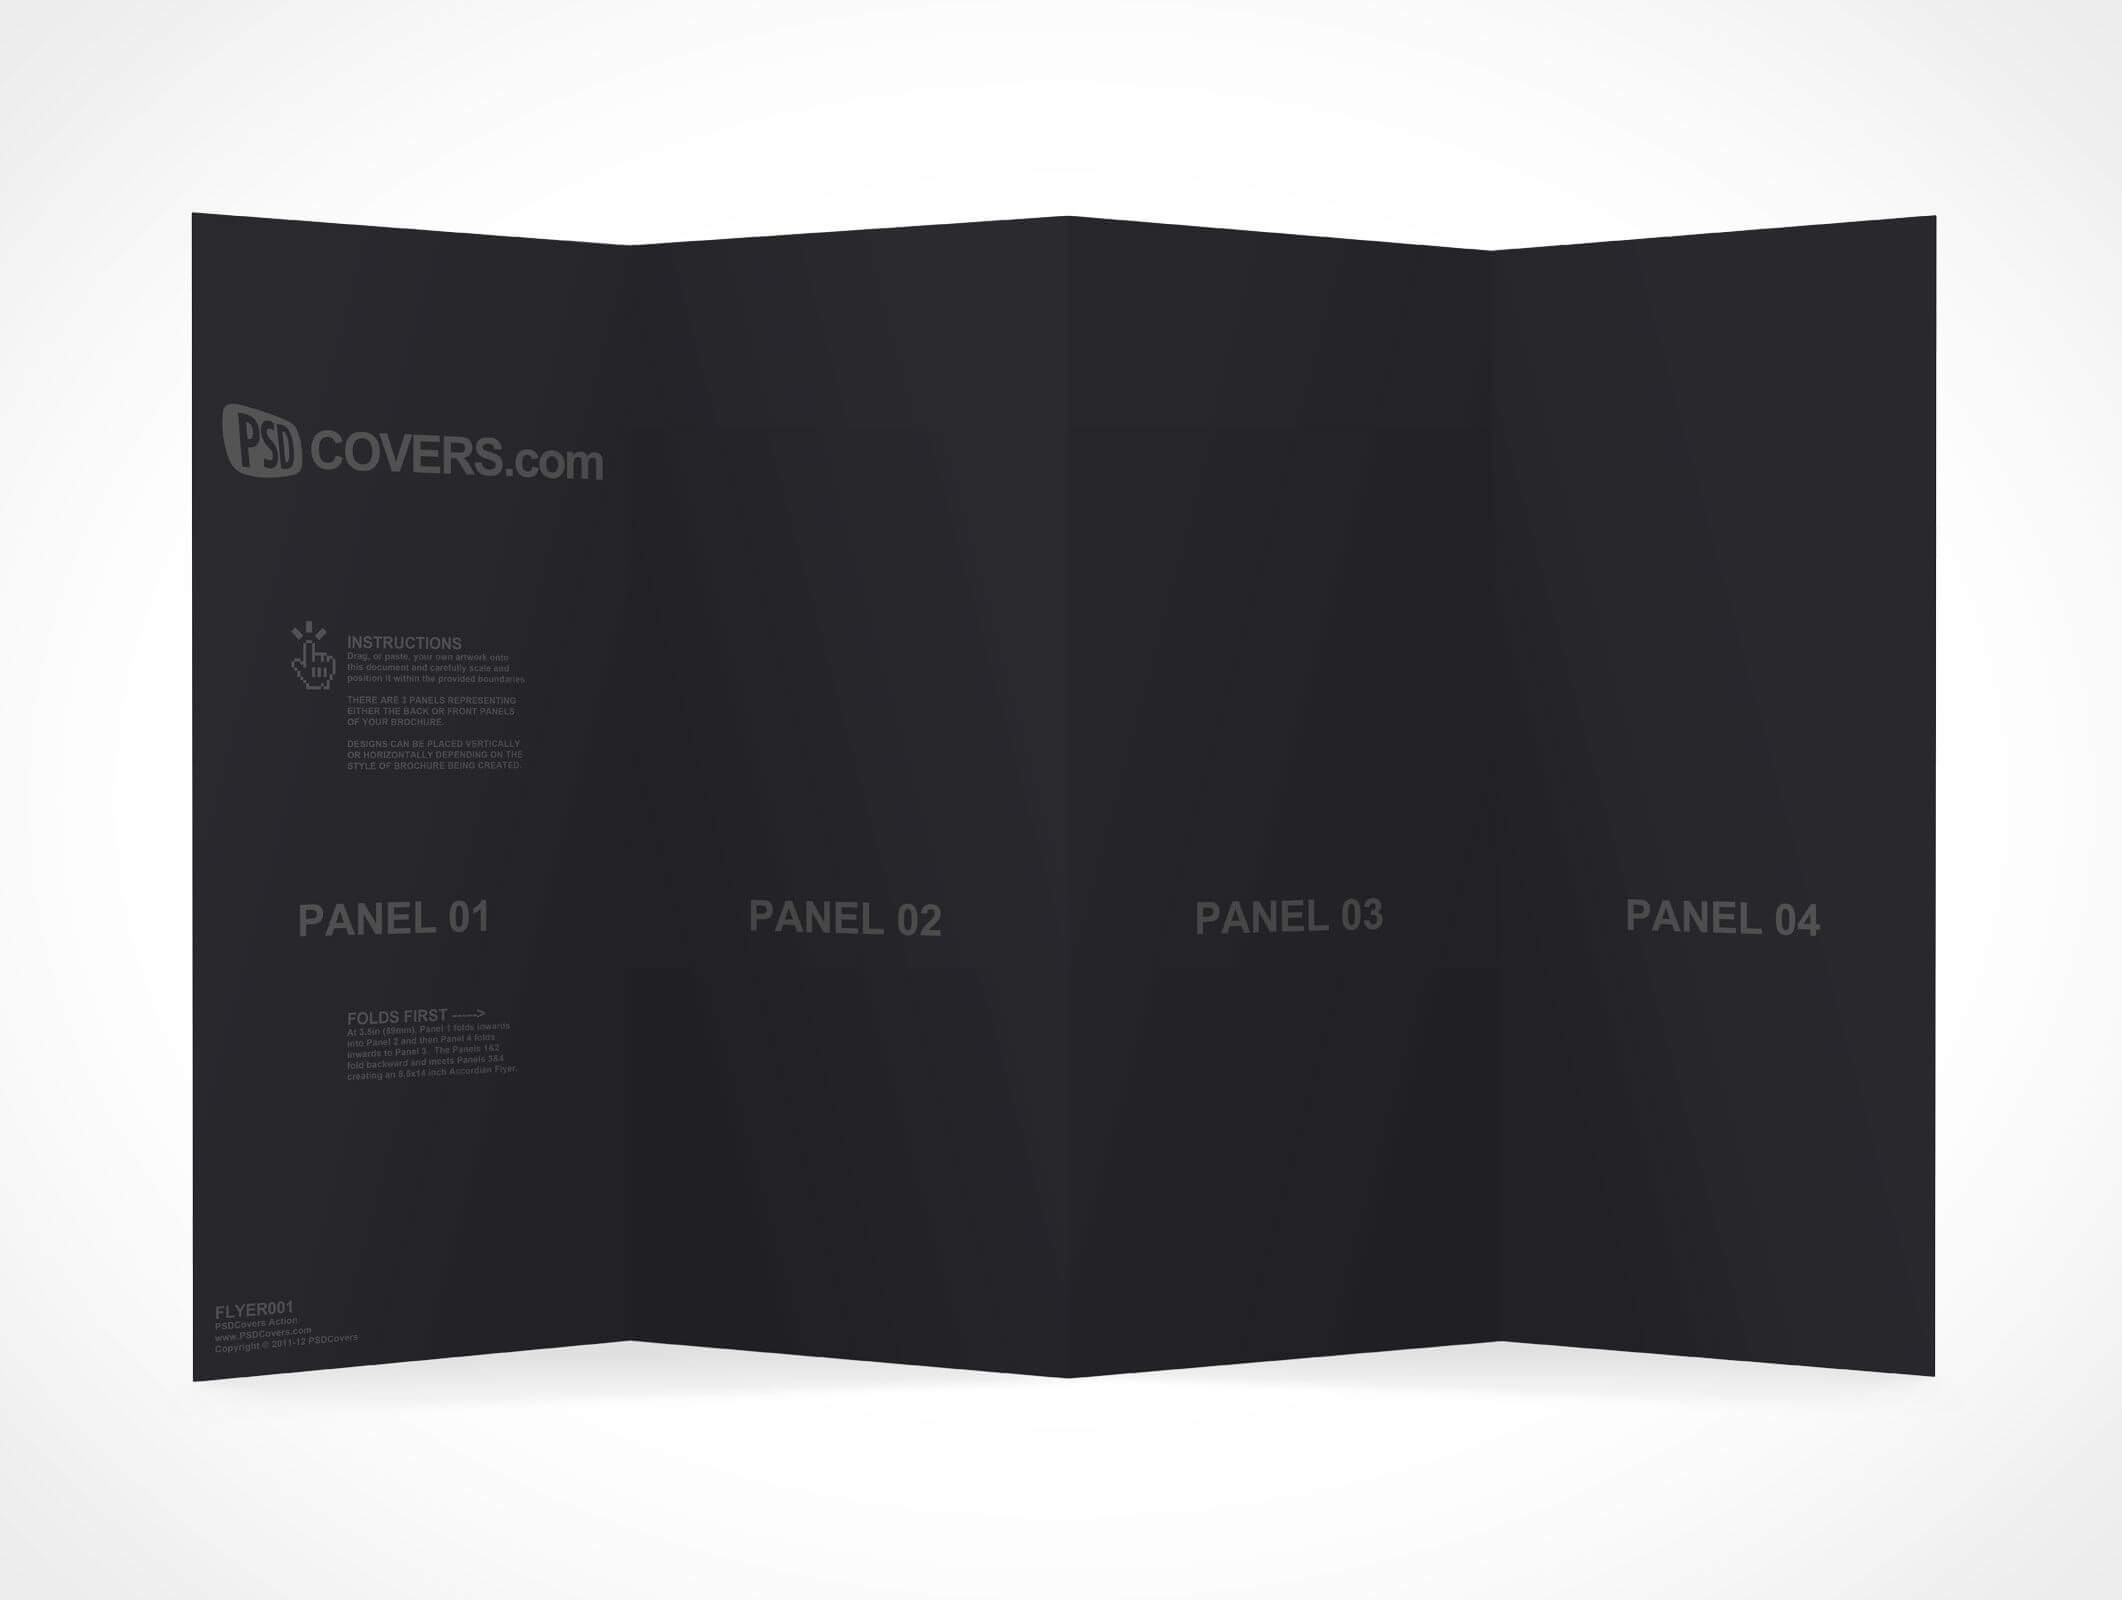 Flyer001 Is A 4 Panel Flyer Brochure Measuring 8.5 Inches Intended For 4 Panel Brochure Template